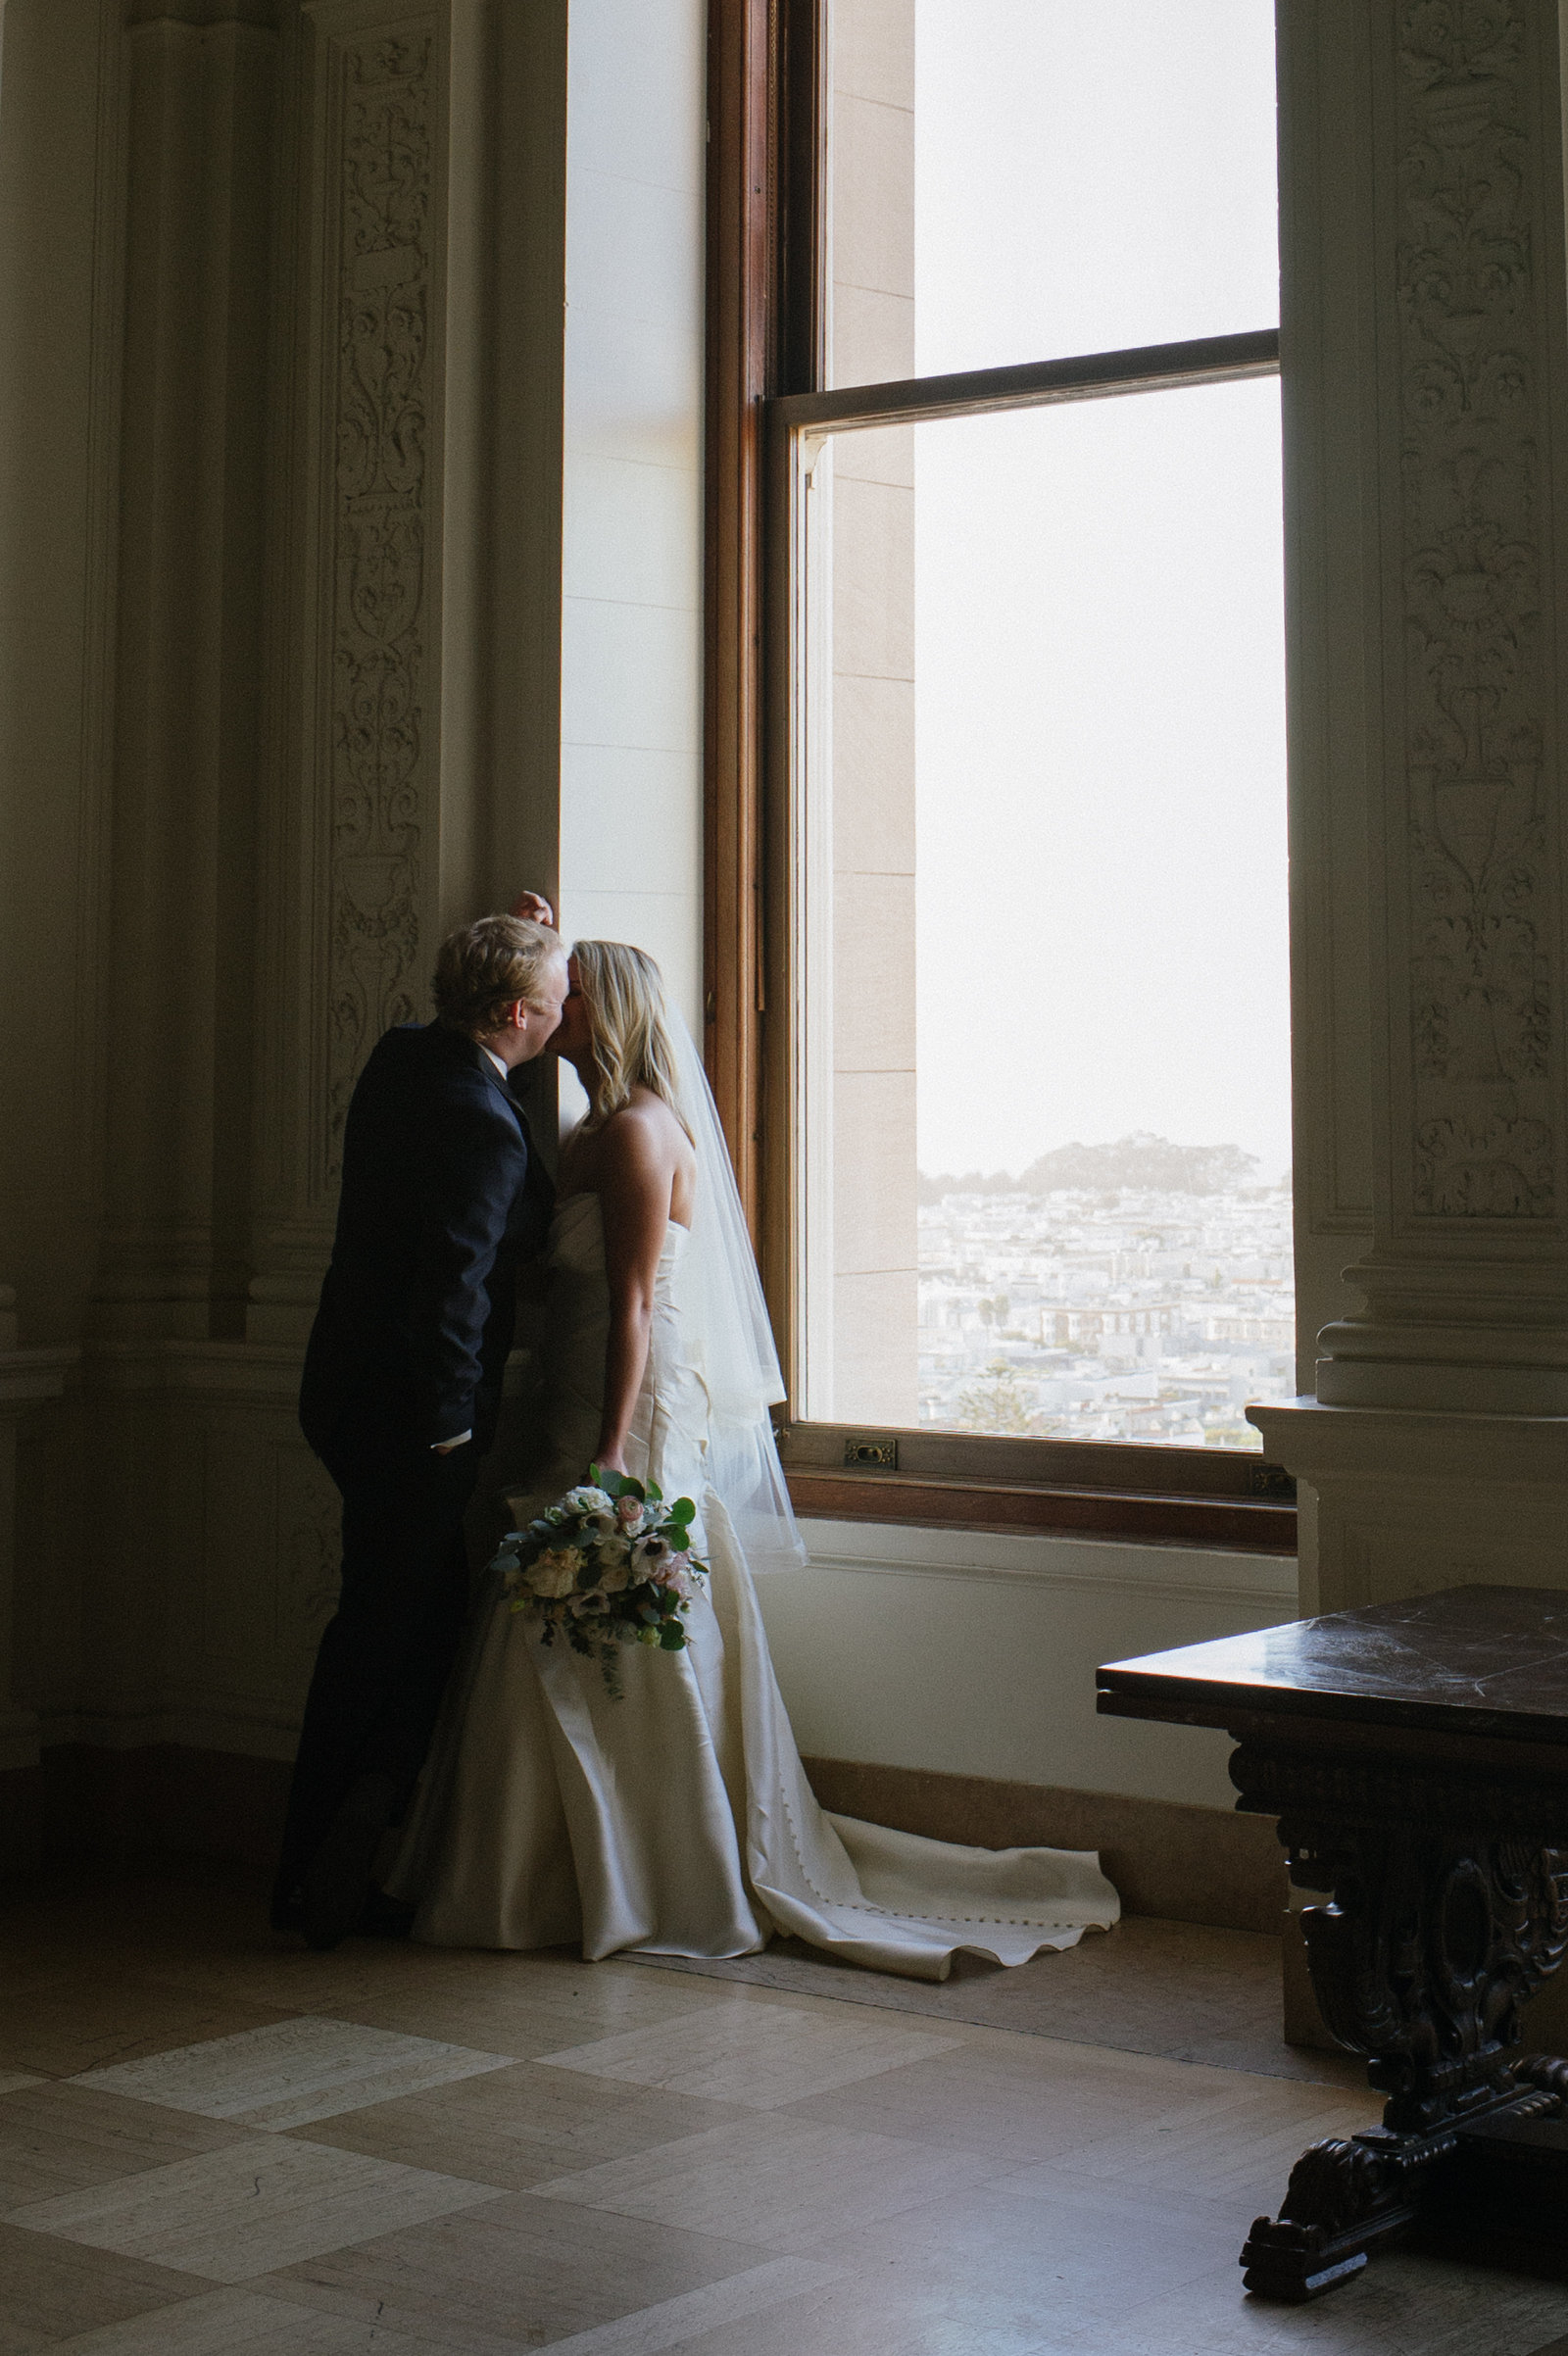 0896-MJ0_6136-2-san-francisco-california-wedding-flood-mansion-michaela-joy-photography